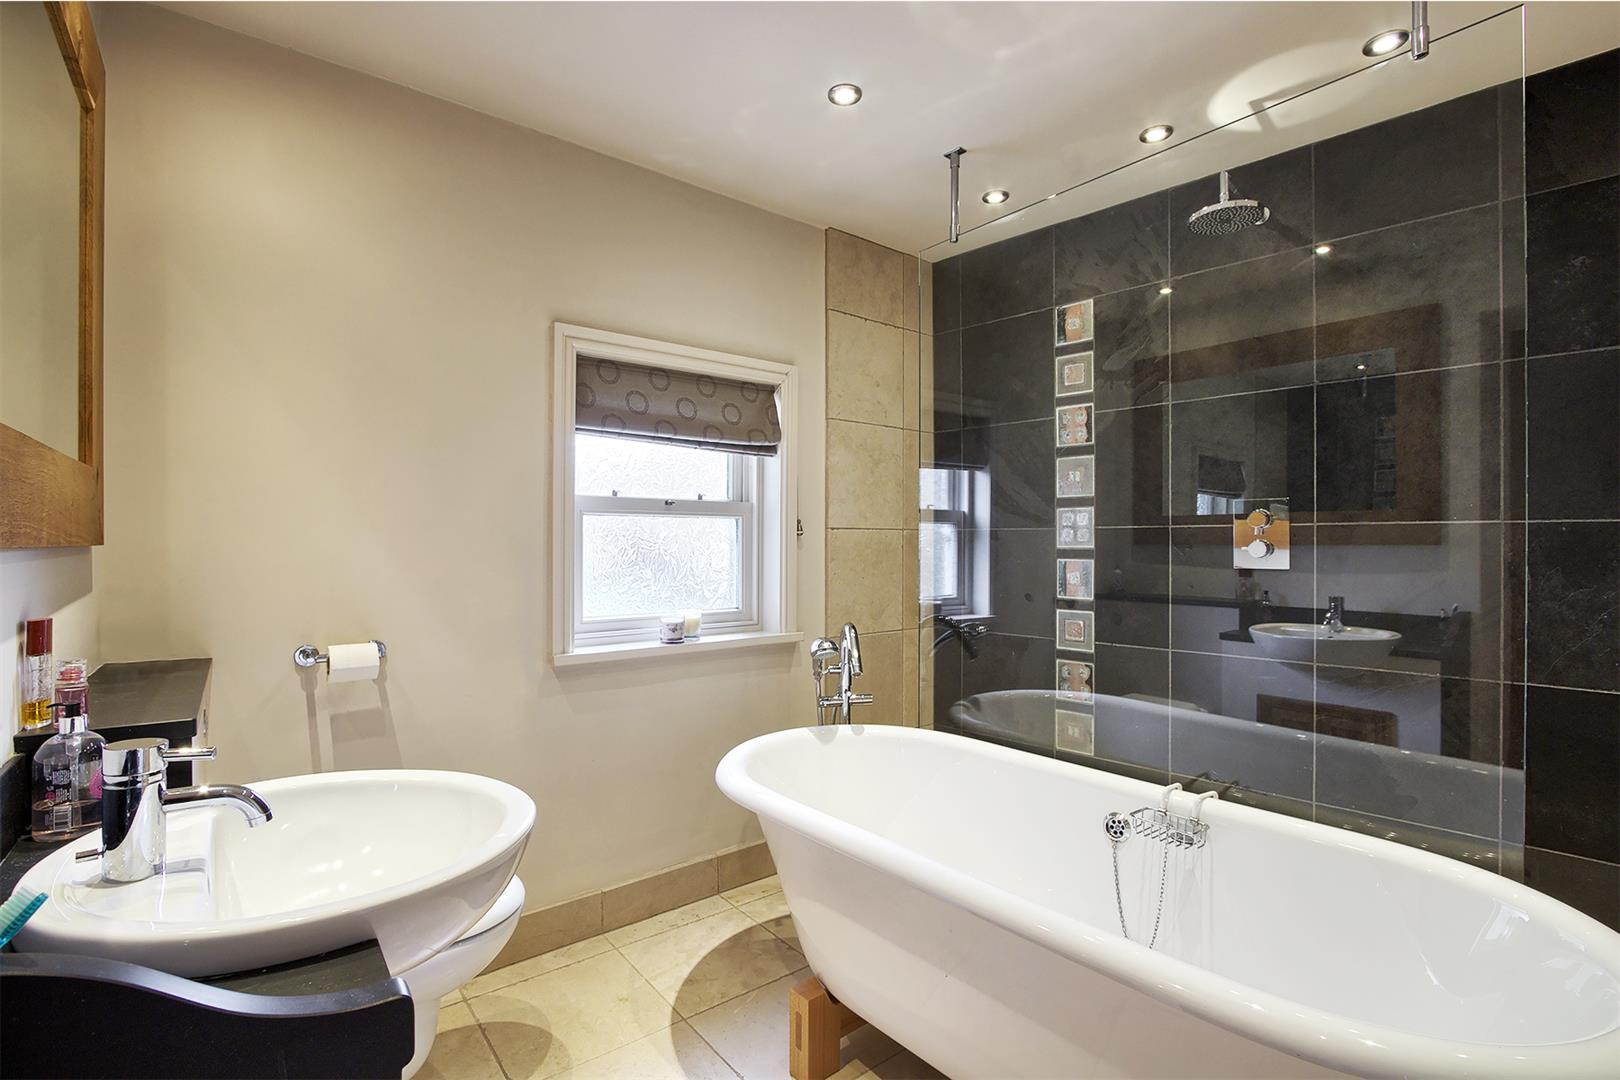 5 bedroom detached house For Sale in Bolton - bathroom.png.